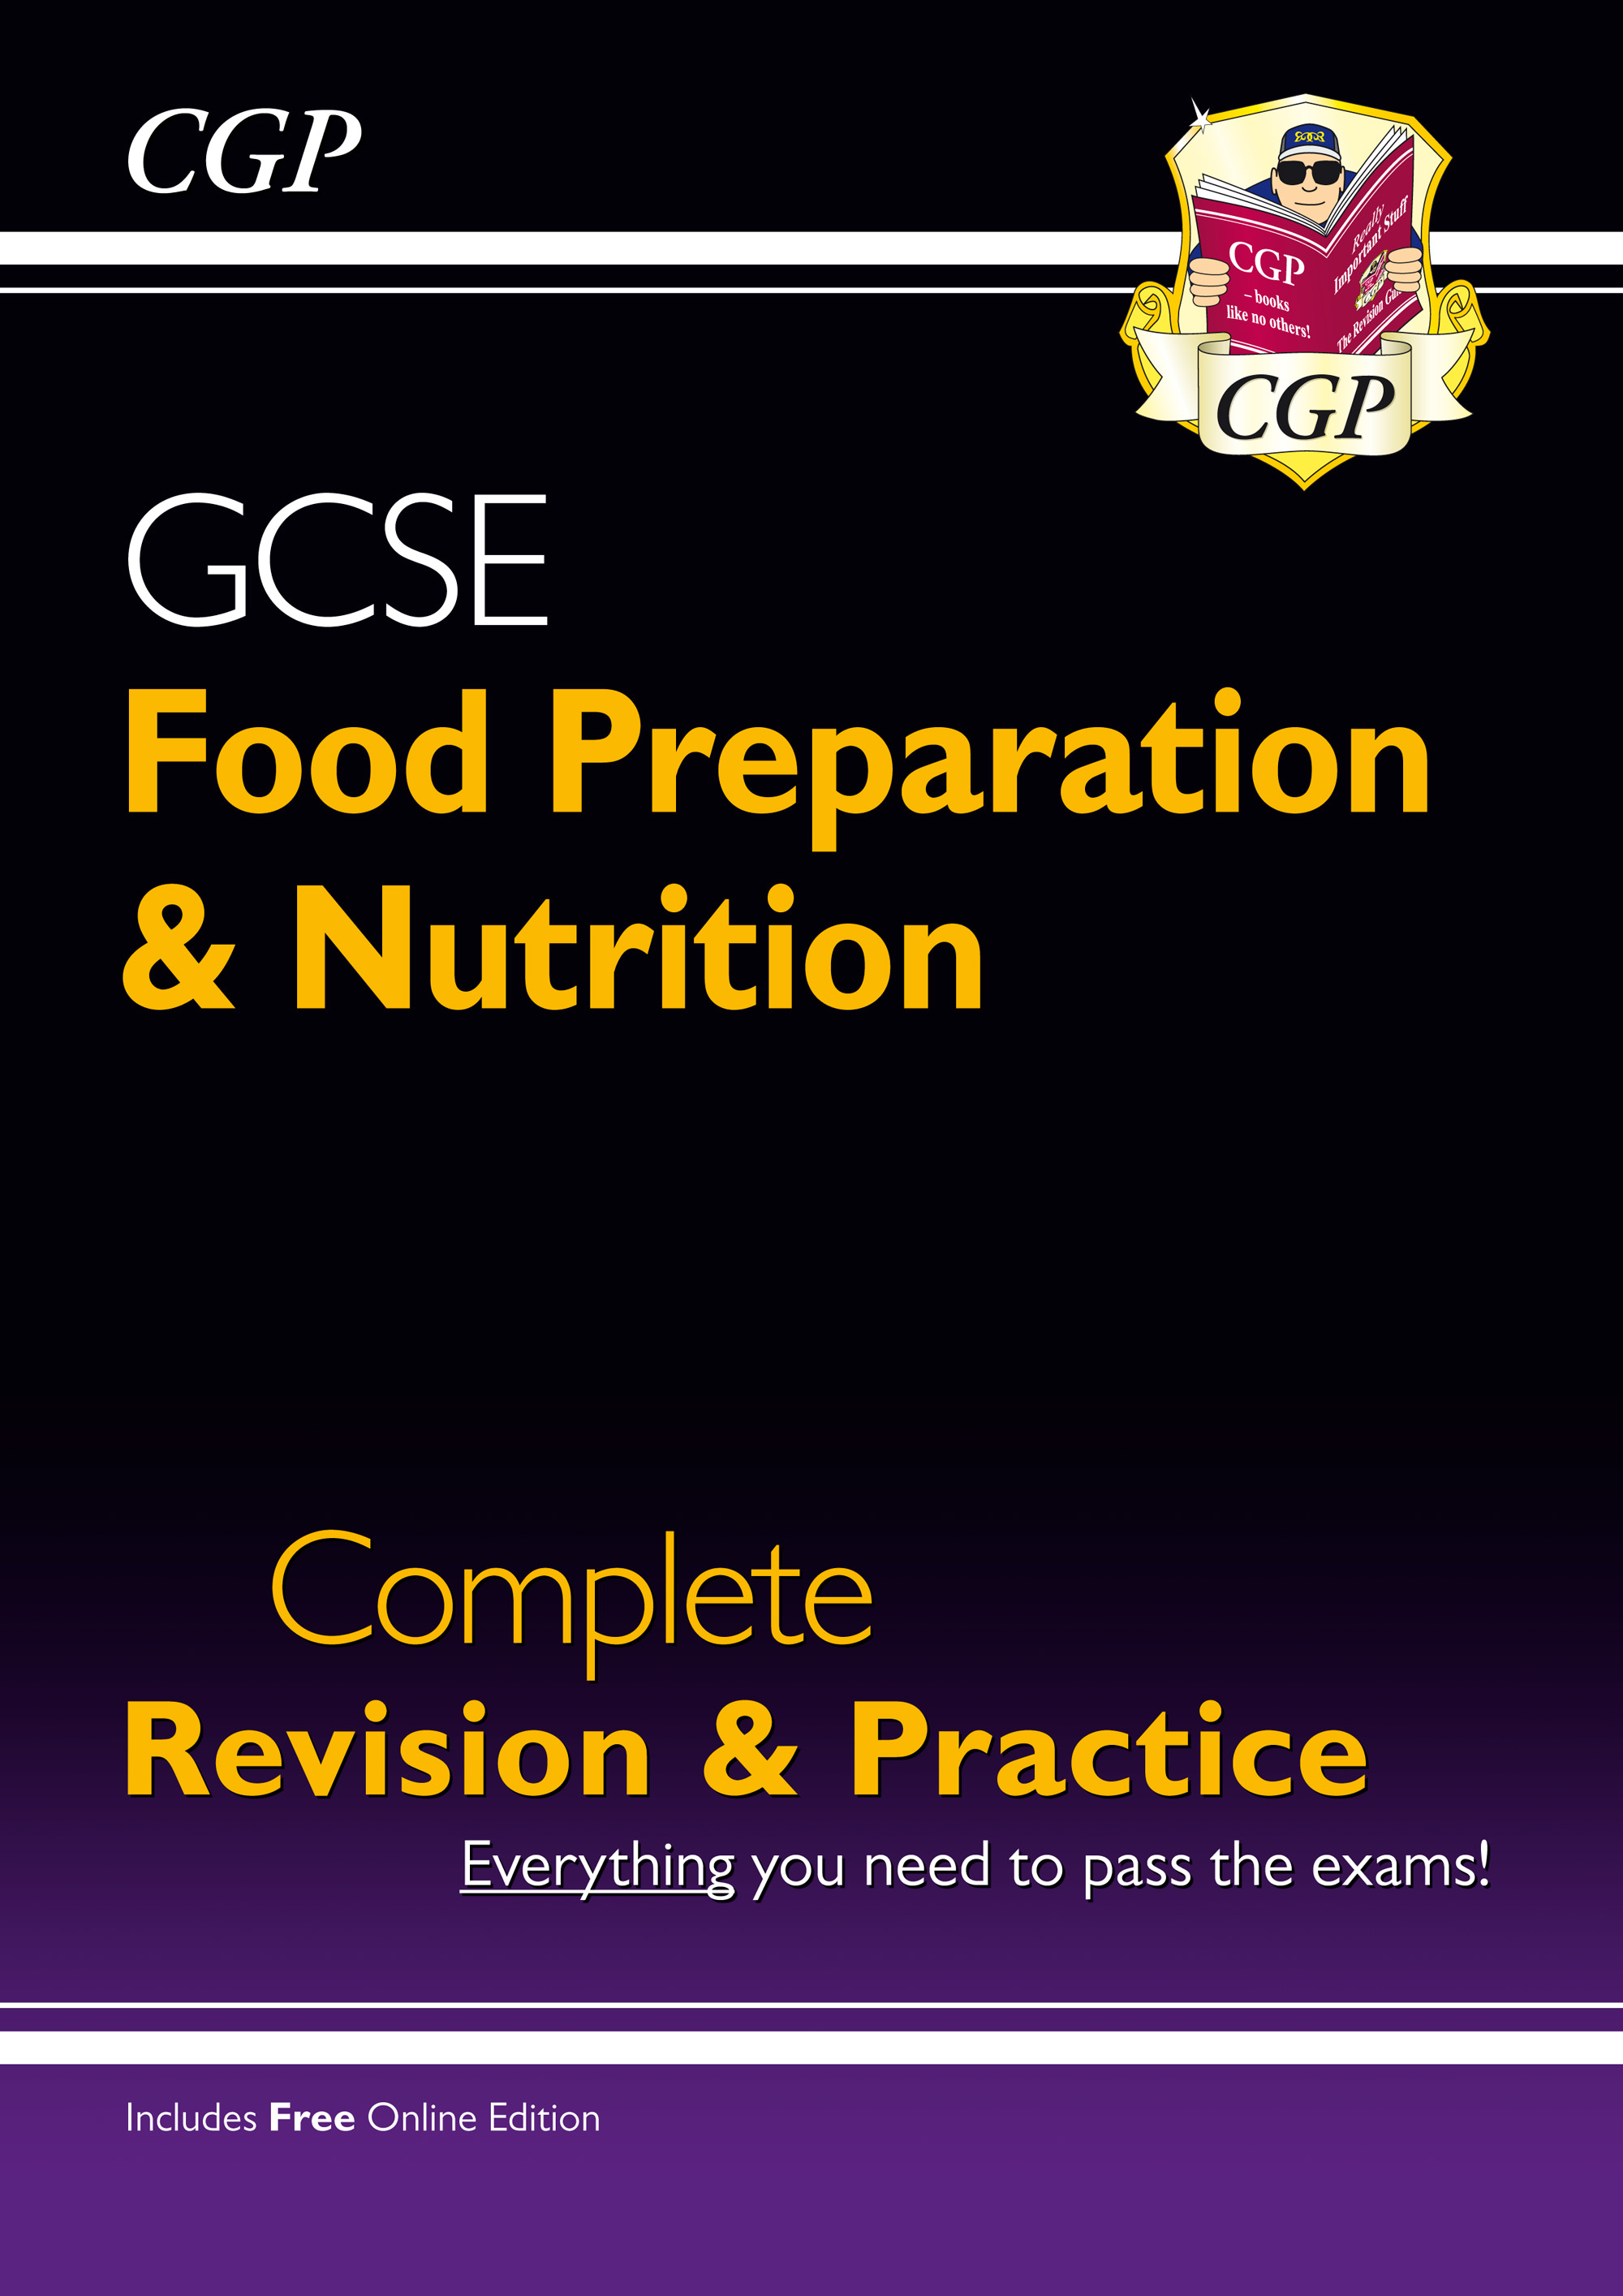 FNS41 - Grade 9-1 GCSE Food Preparation & Nutrition - Complete Revision & Practice (with Online Edit